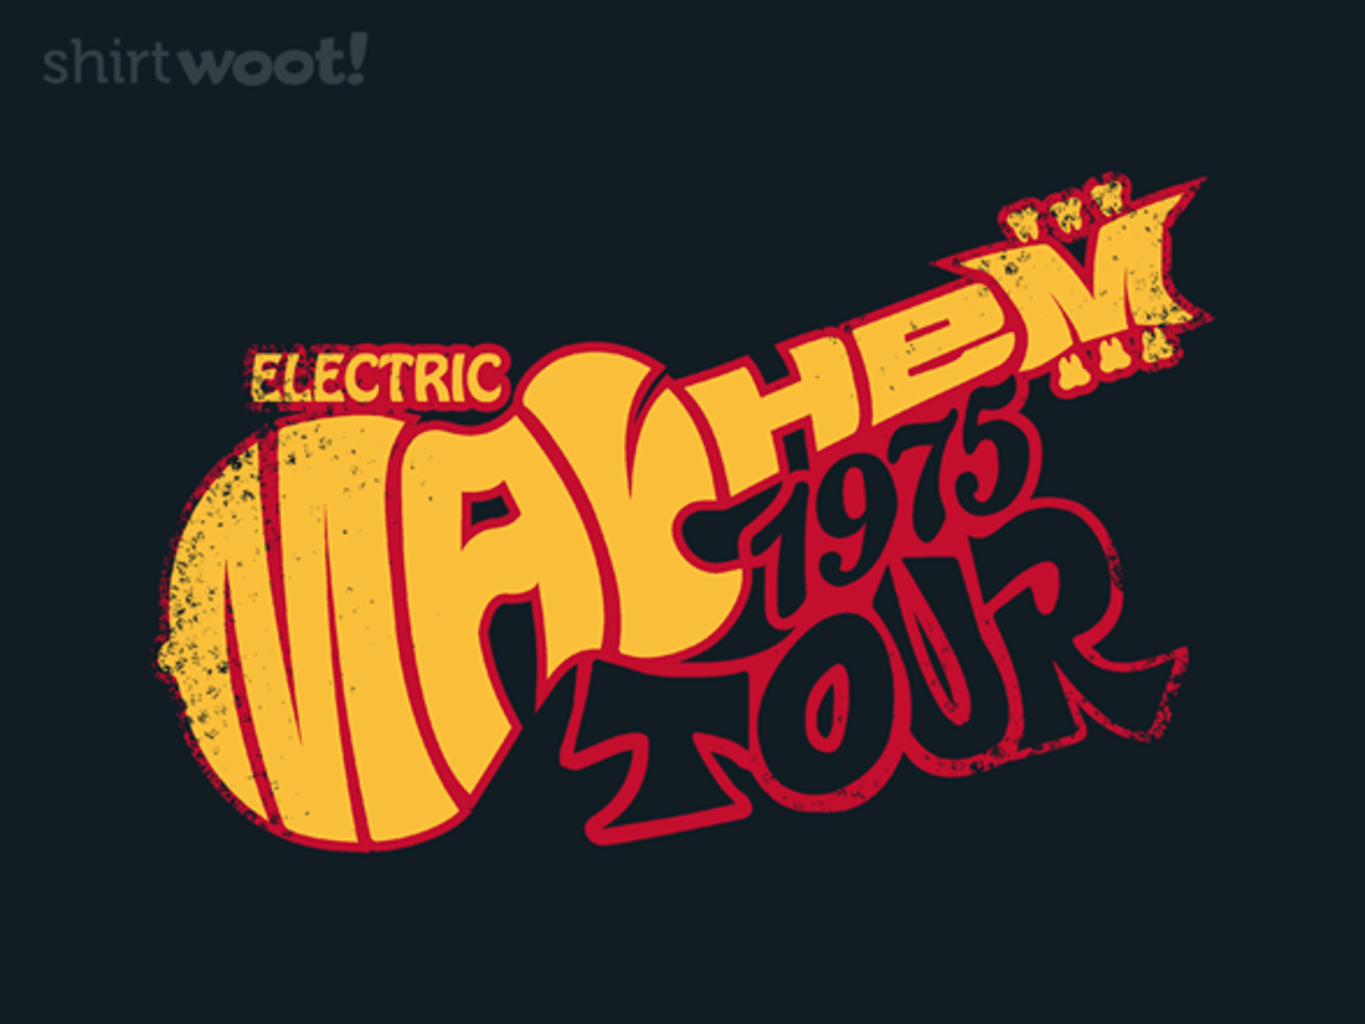 Woot!: Electric Mayhem